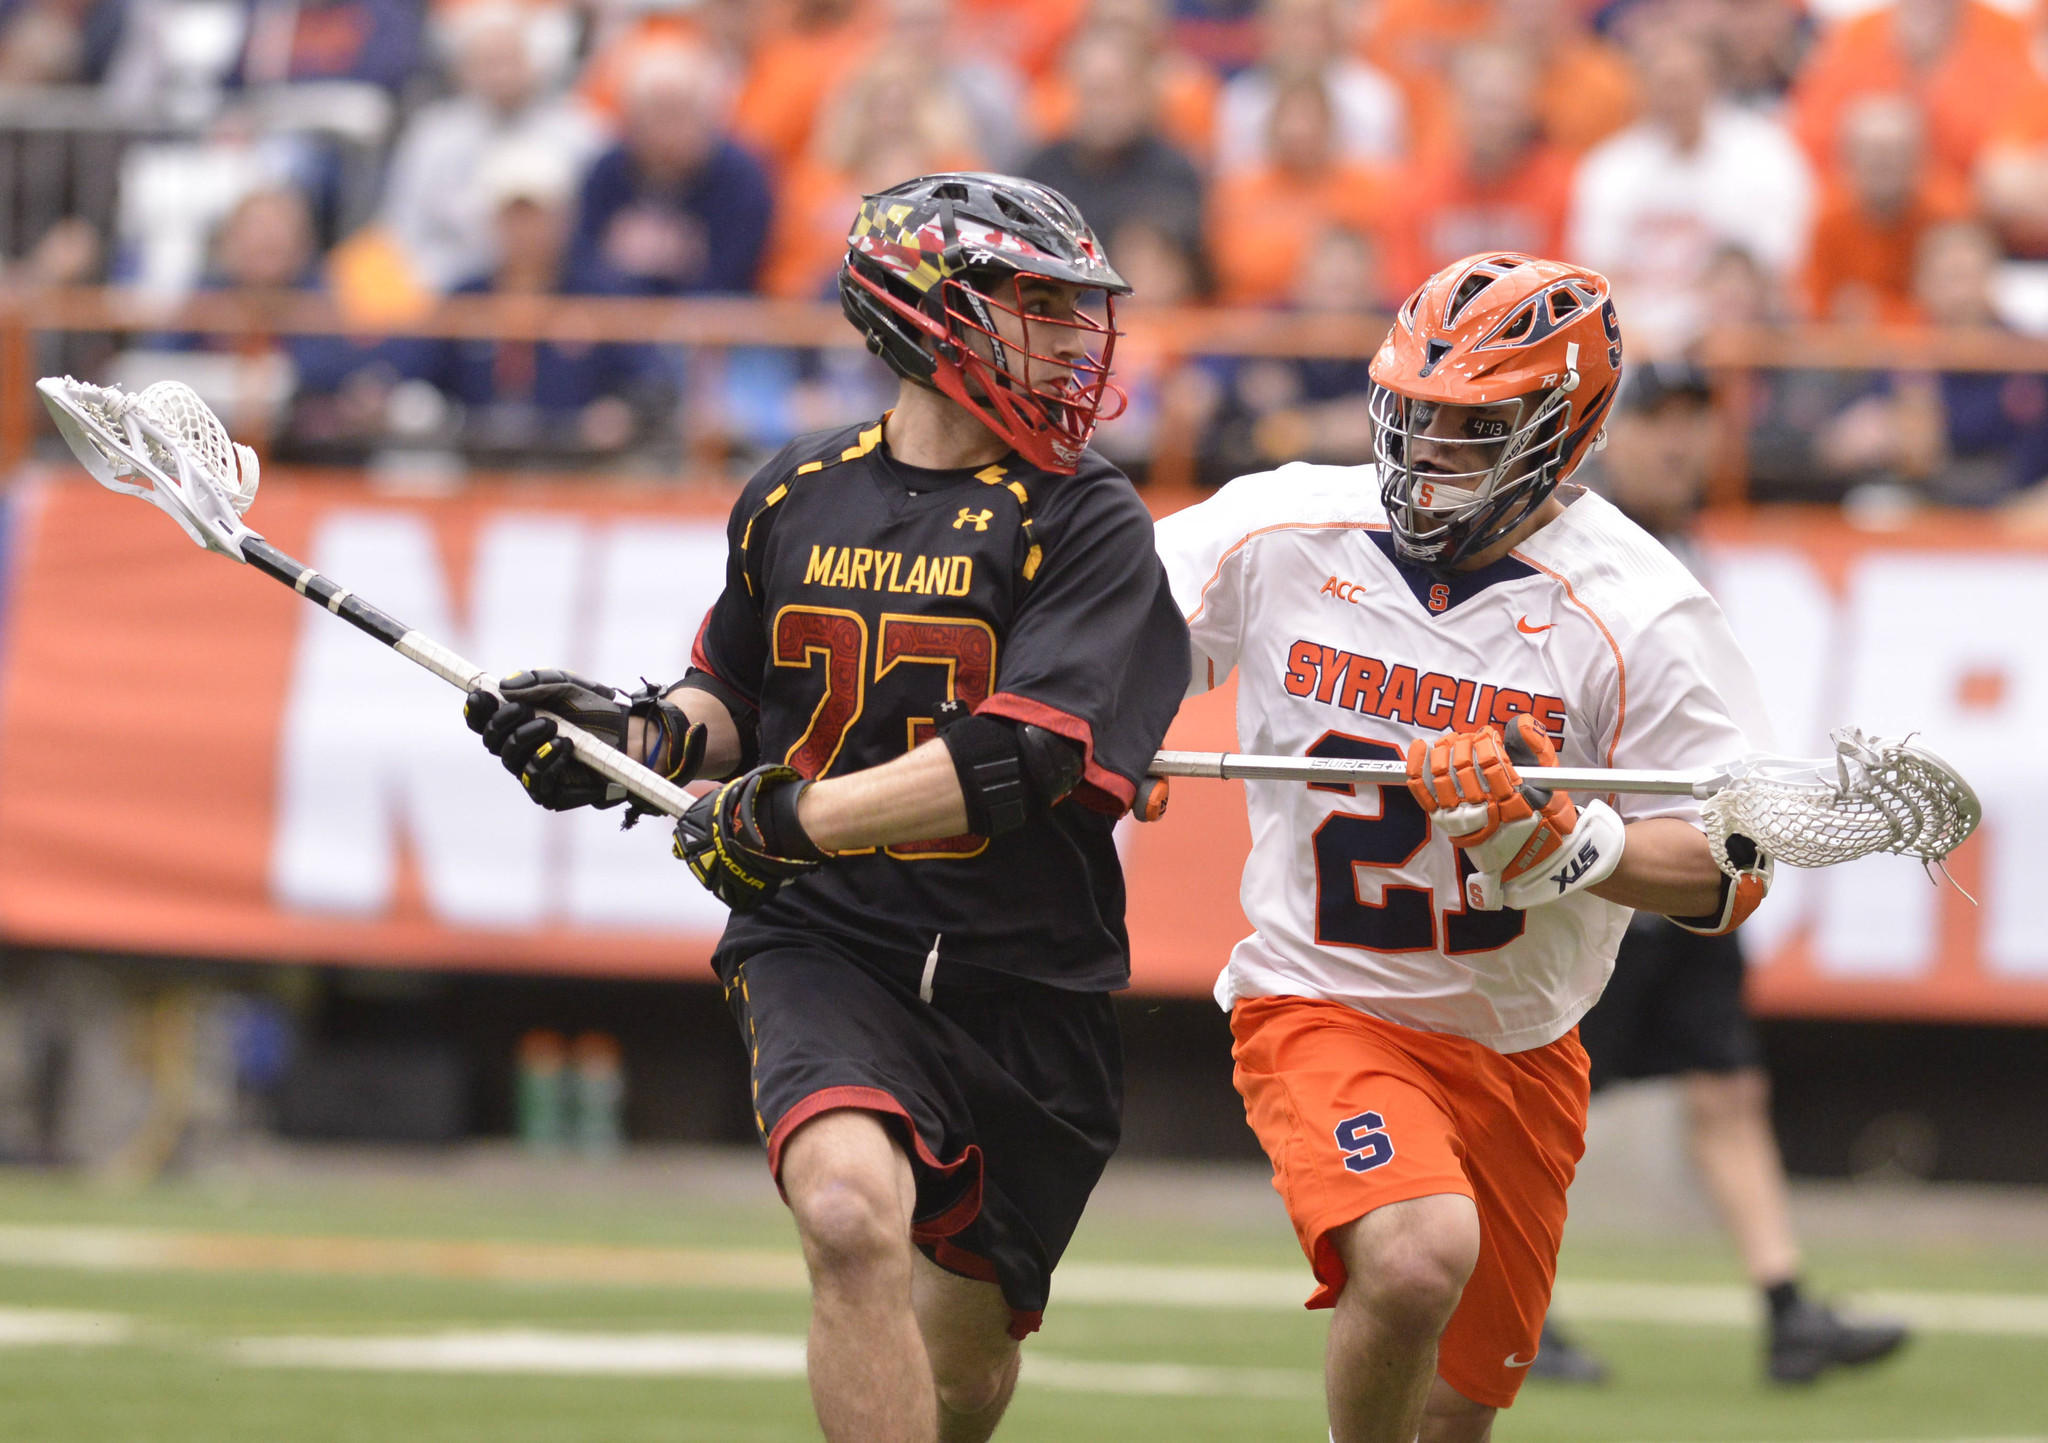 Maryland's Connor Cannizzaro cradles the ball as Syracuse's Mike Messina applies pressure during the first quarter of a blowout Terps win at the Carrier Dome.